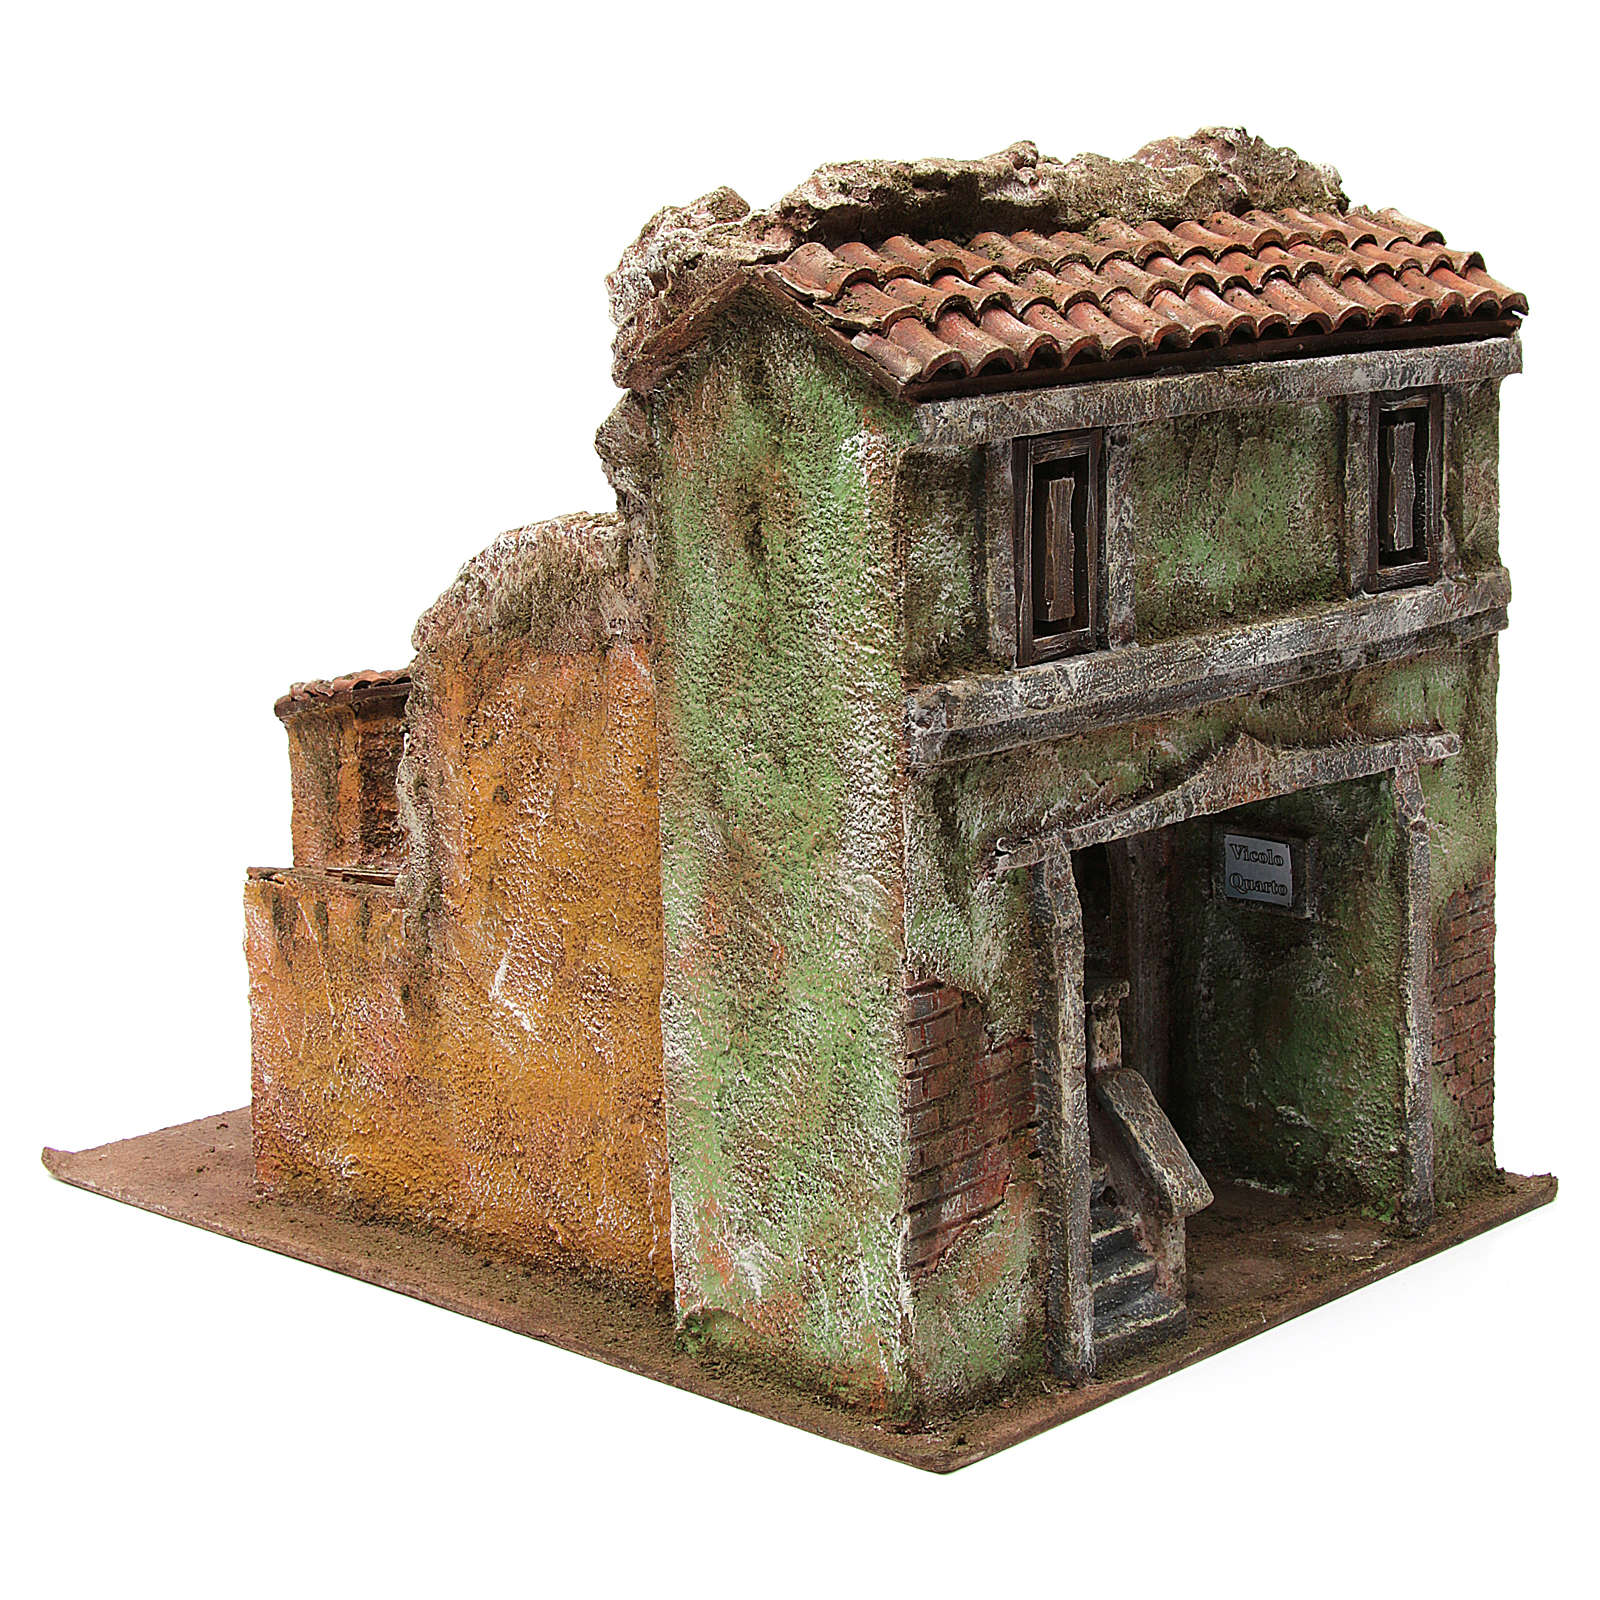 Vicolo Quarto alley setting for 10 cm nativity scene 4